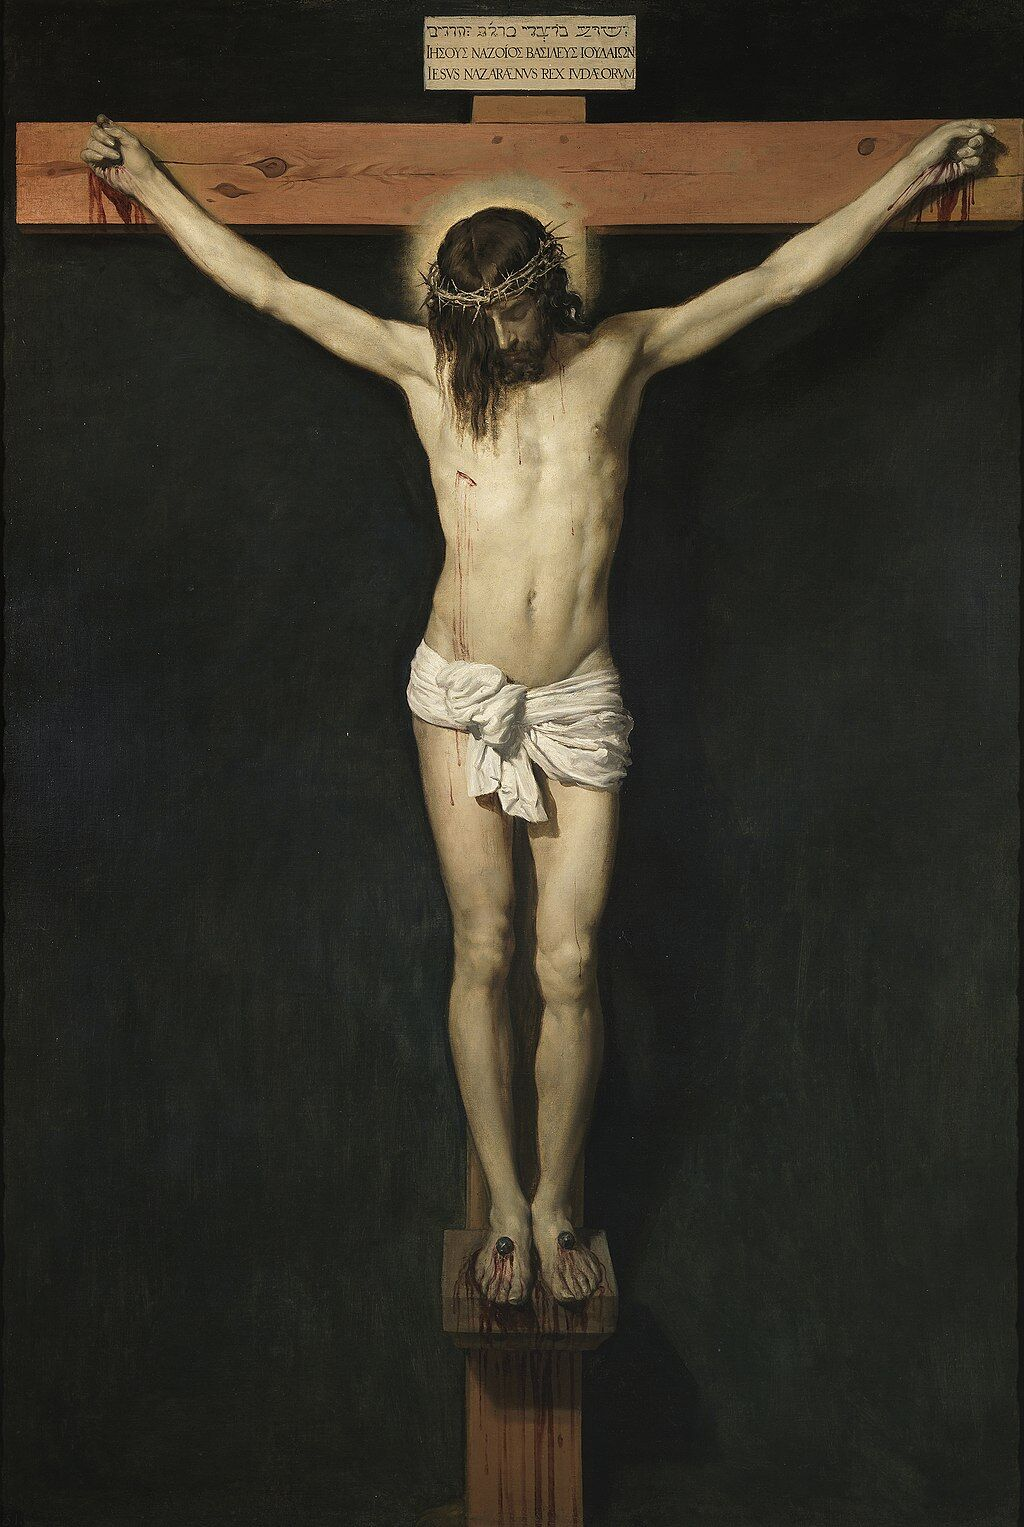 Diego Velázquez, The Crucified Christ, 1632. Image via Wikimedia Commons.